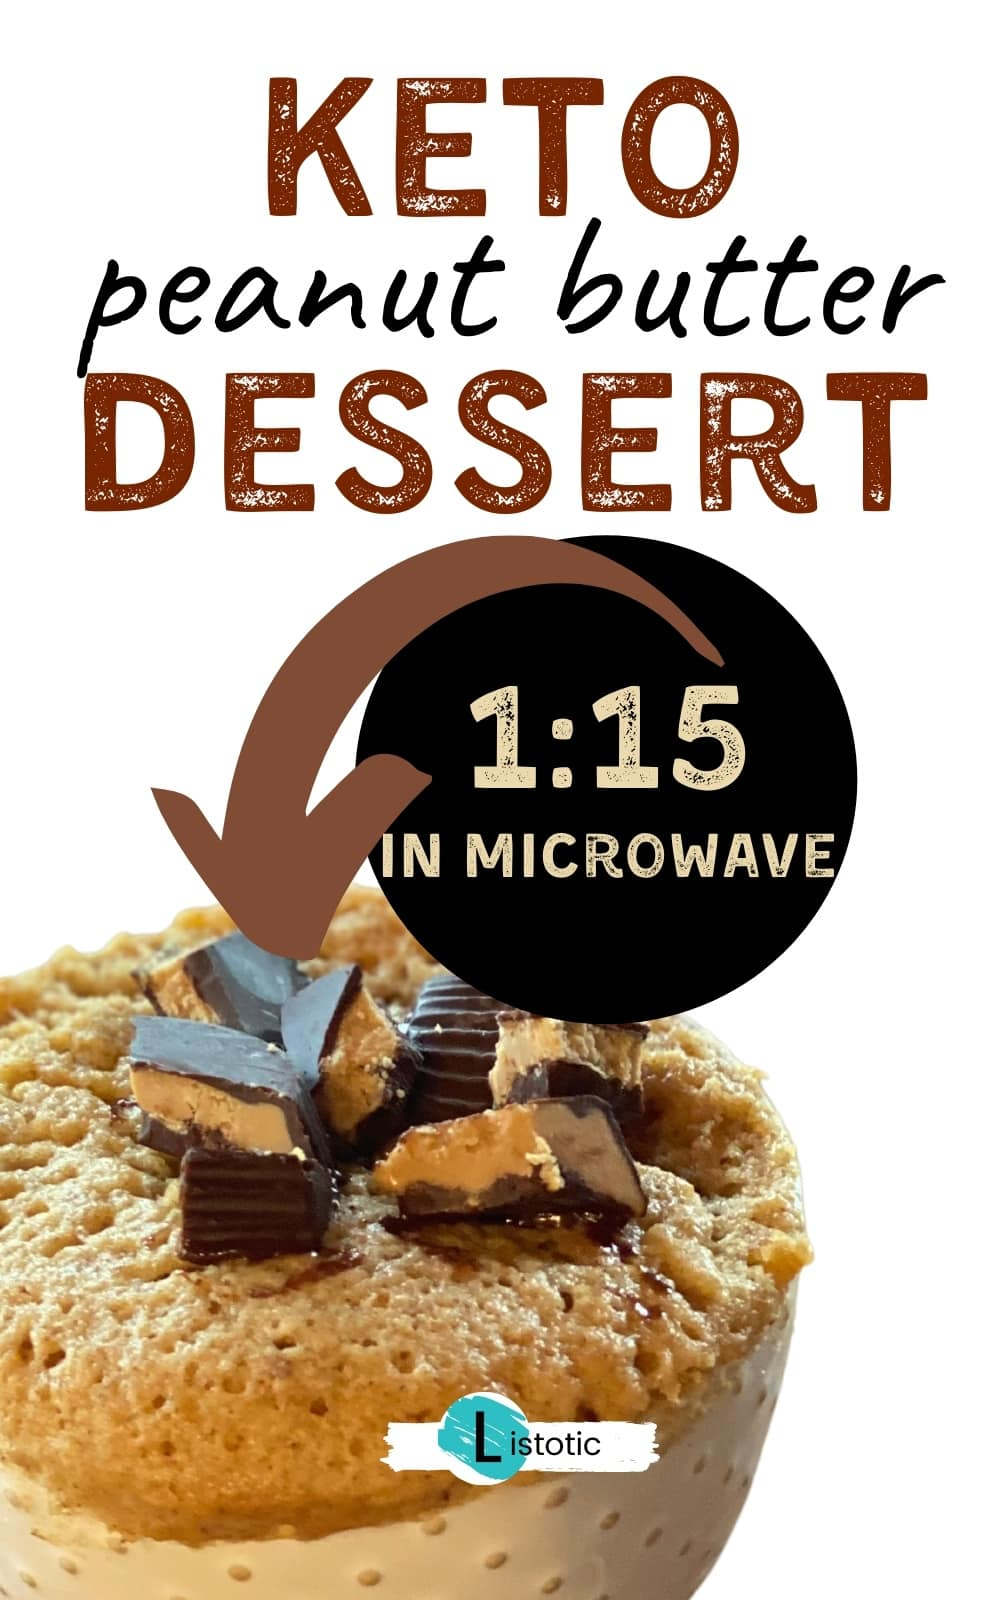 Keto Dessert Recipe made in the microwave